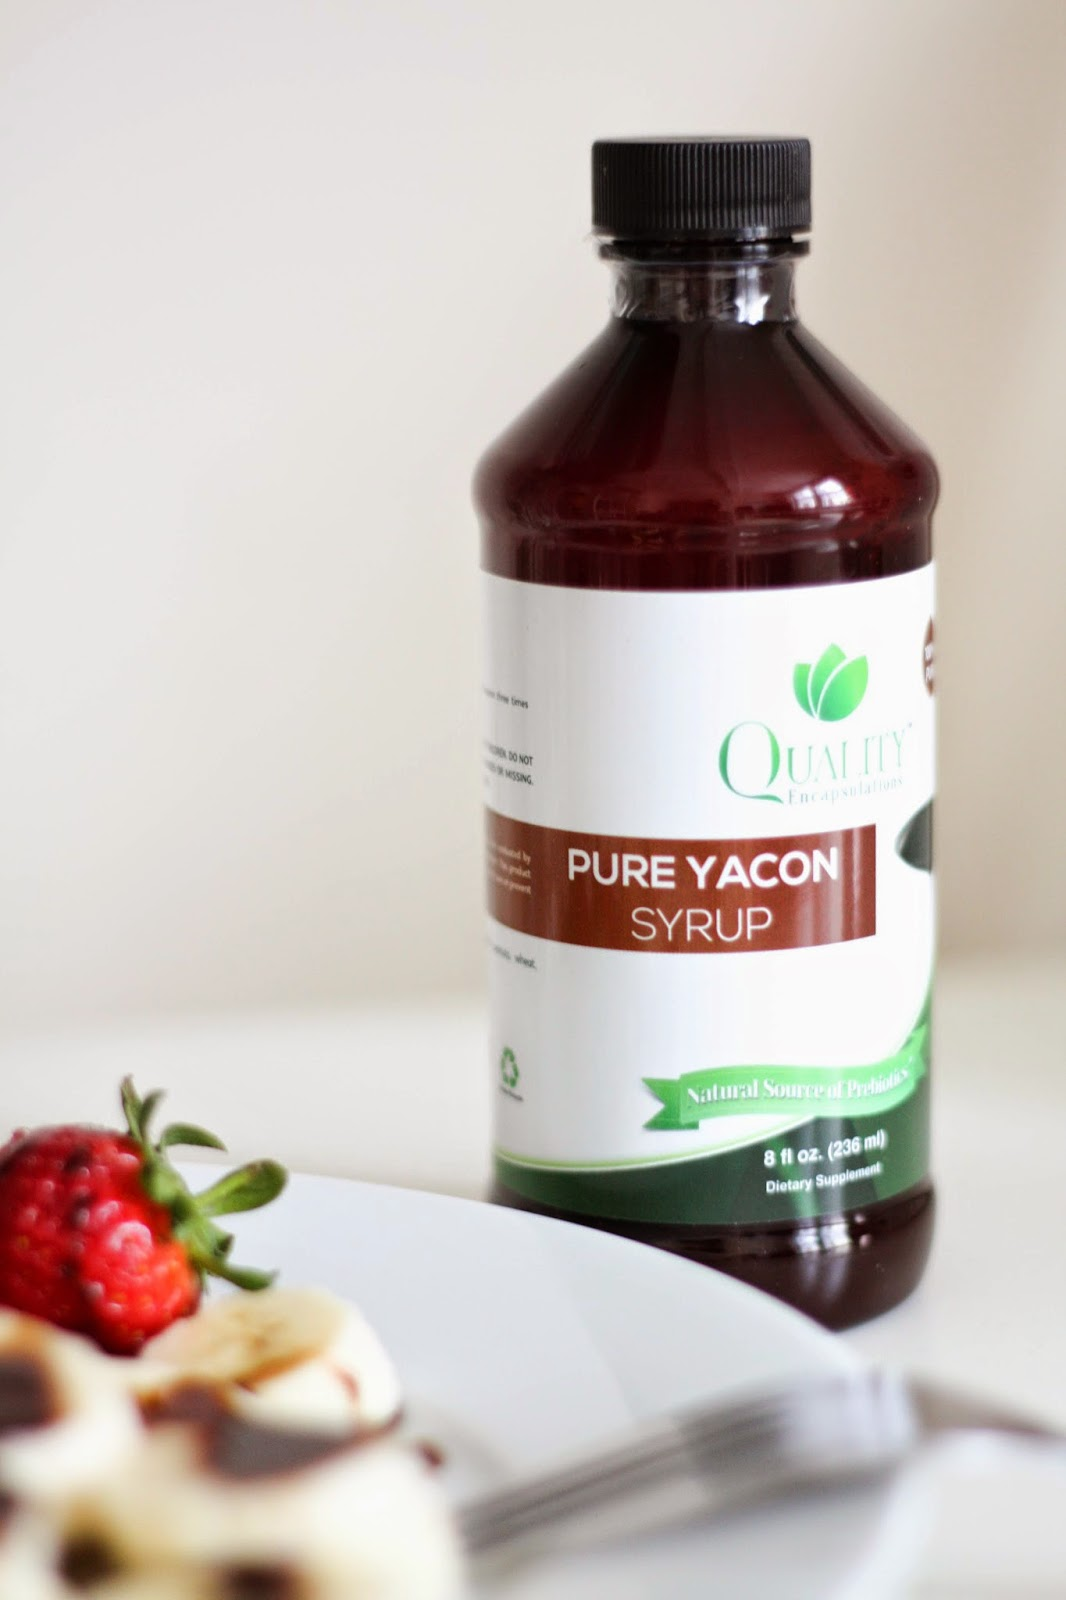 Yacon syrup review benefits how to use it